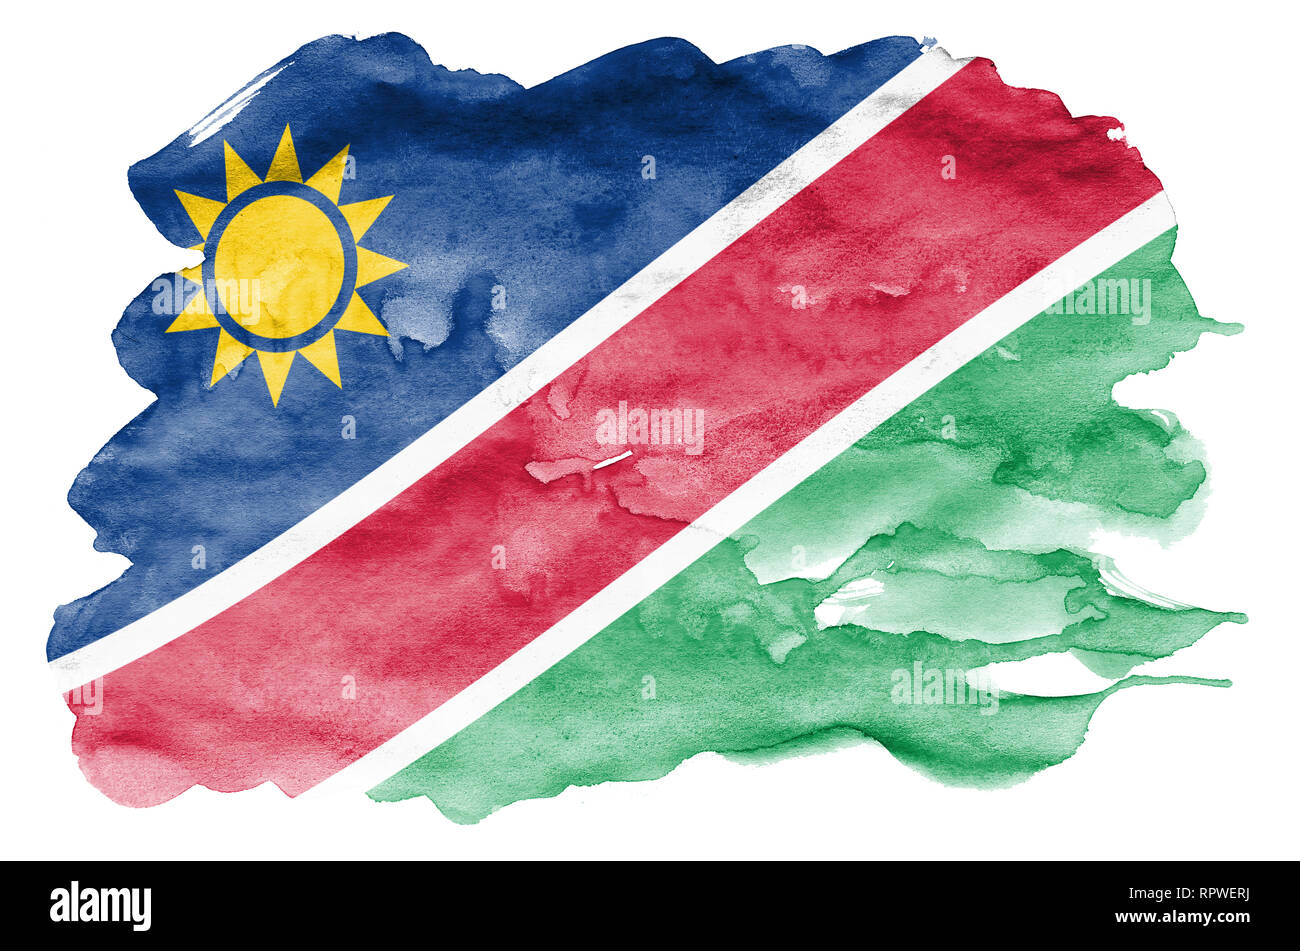 Namibia flag  is depicted in liquid watercolor style isolated on white background. Careless paint shading with image of national flag. Independence Da - Stock Image